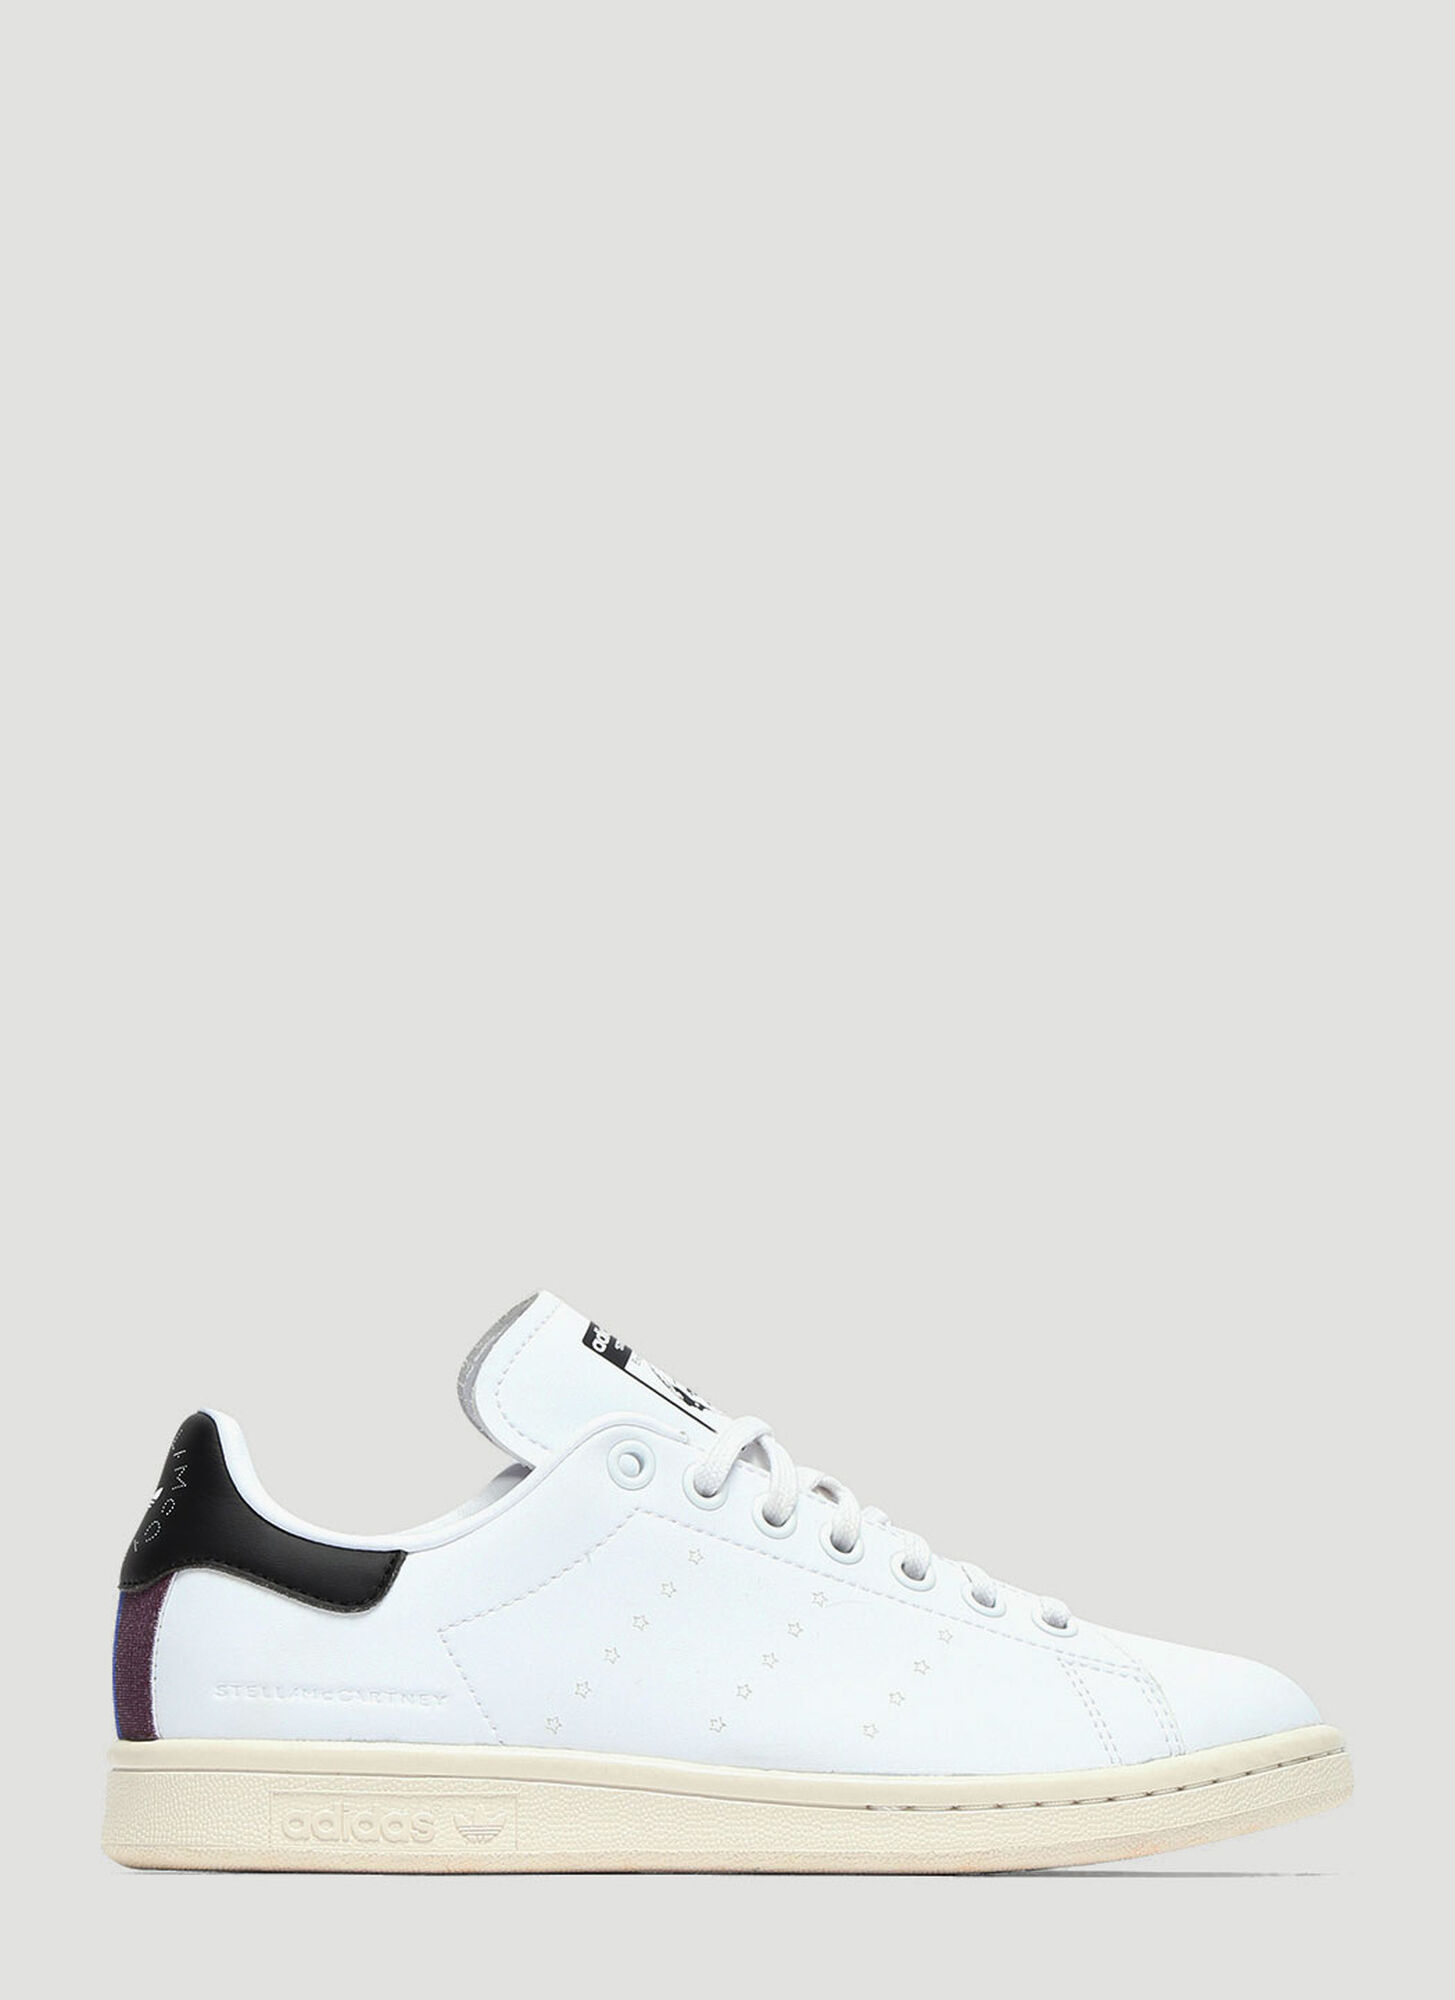 Stella McCartney Low-Top Sneakers in White